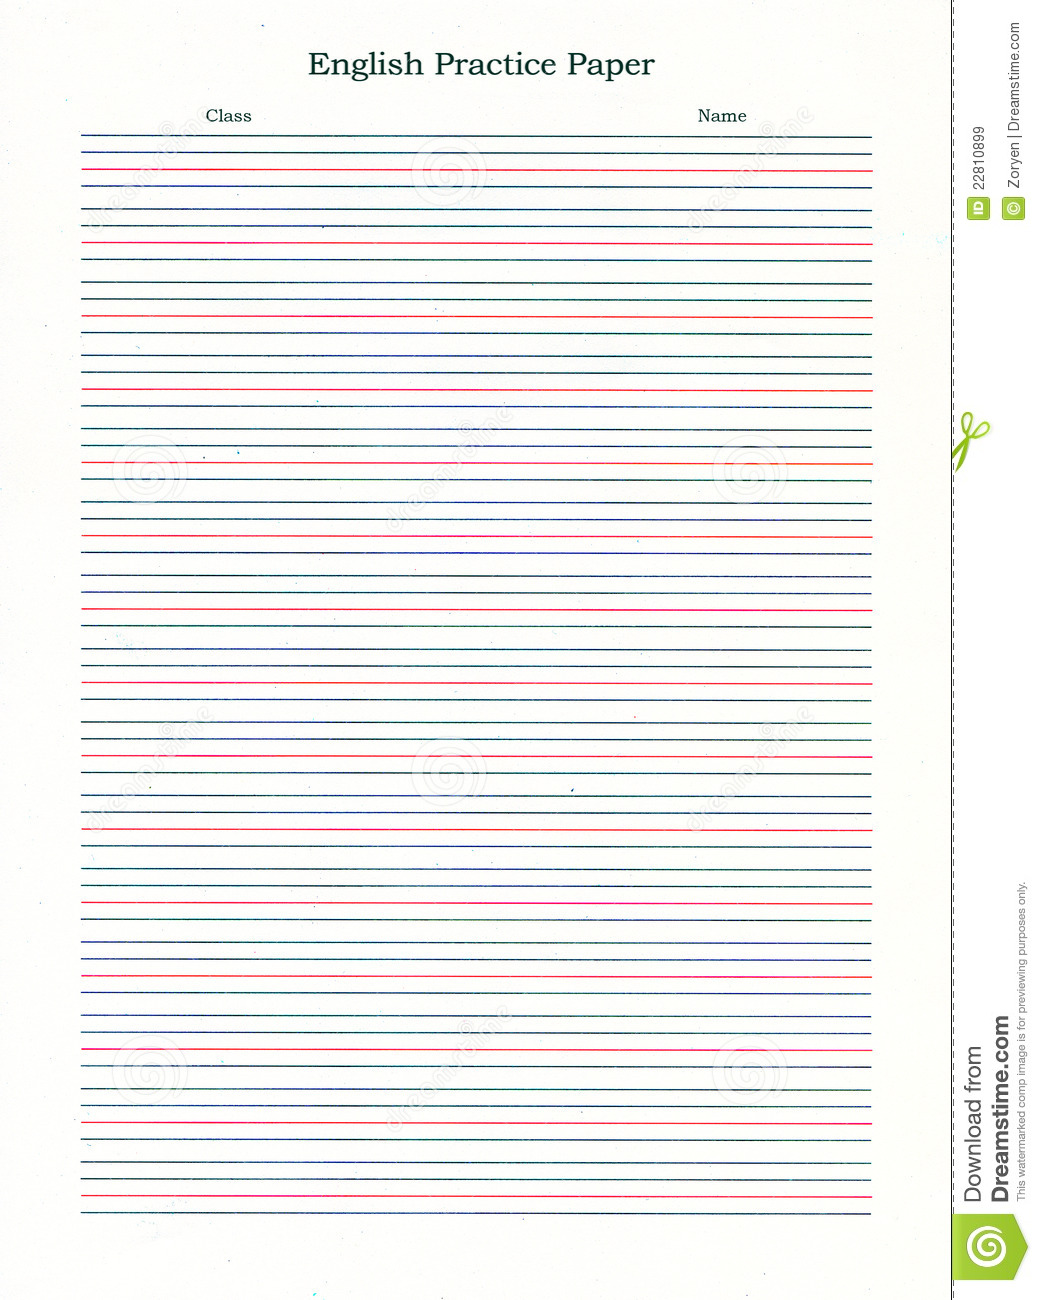 Ruled Writing Paper Royalty Free Stock Images Image 22810899